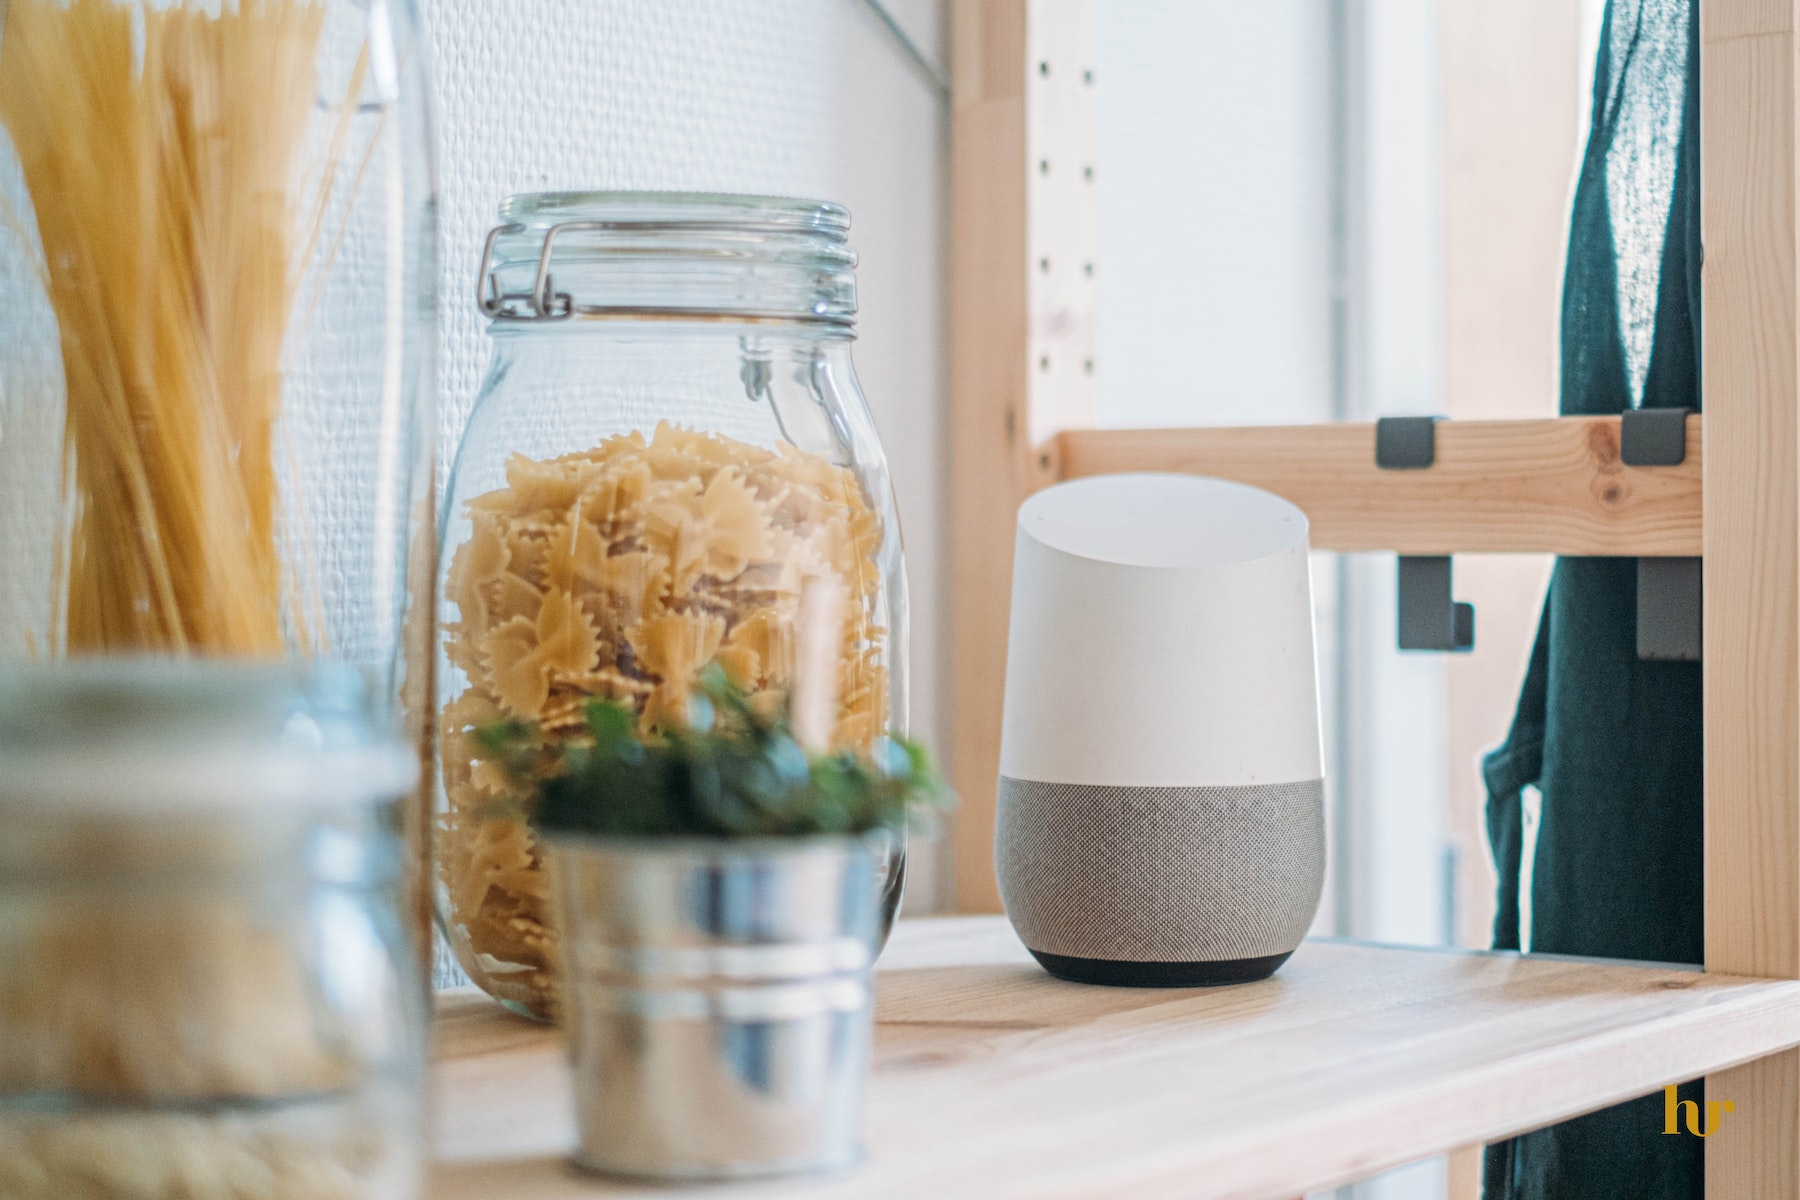 Voice assistant in a smart home